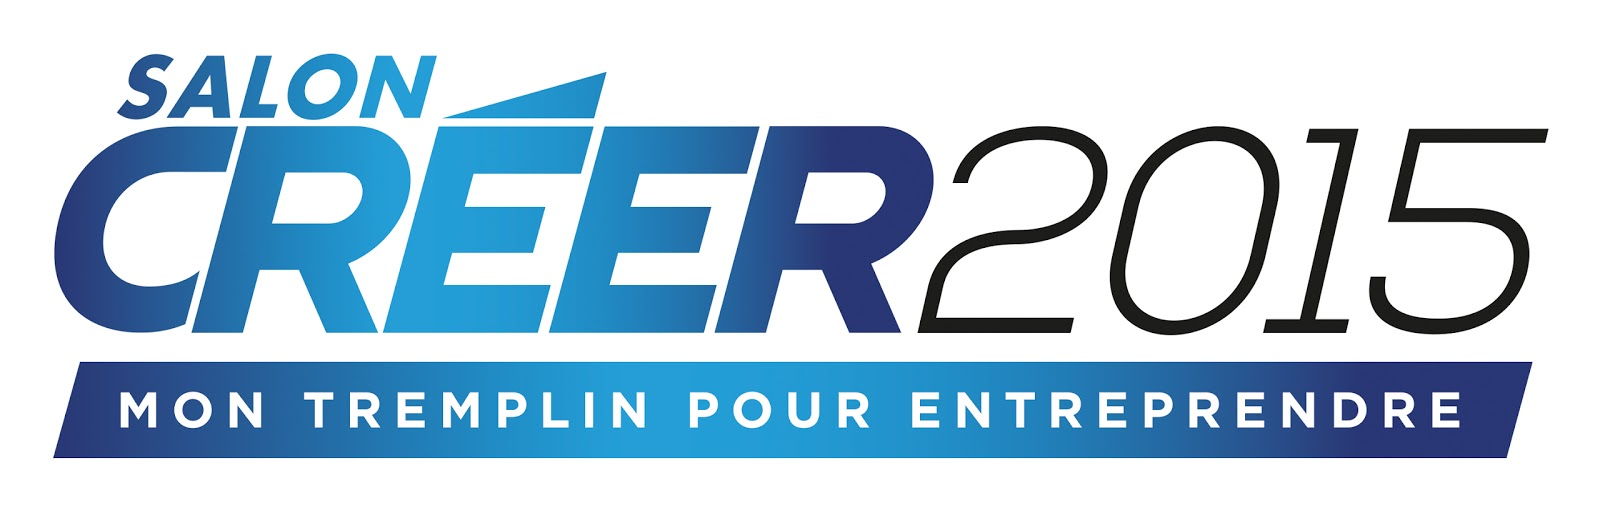 Blog du master 2 mb2i visite du salon creer for Salon master lille